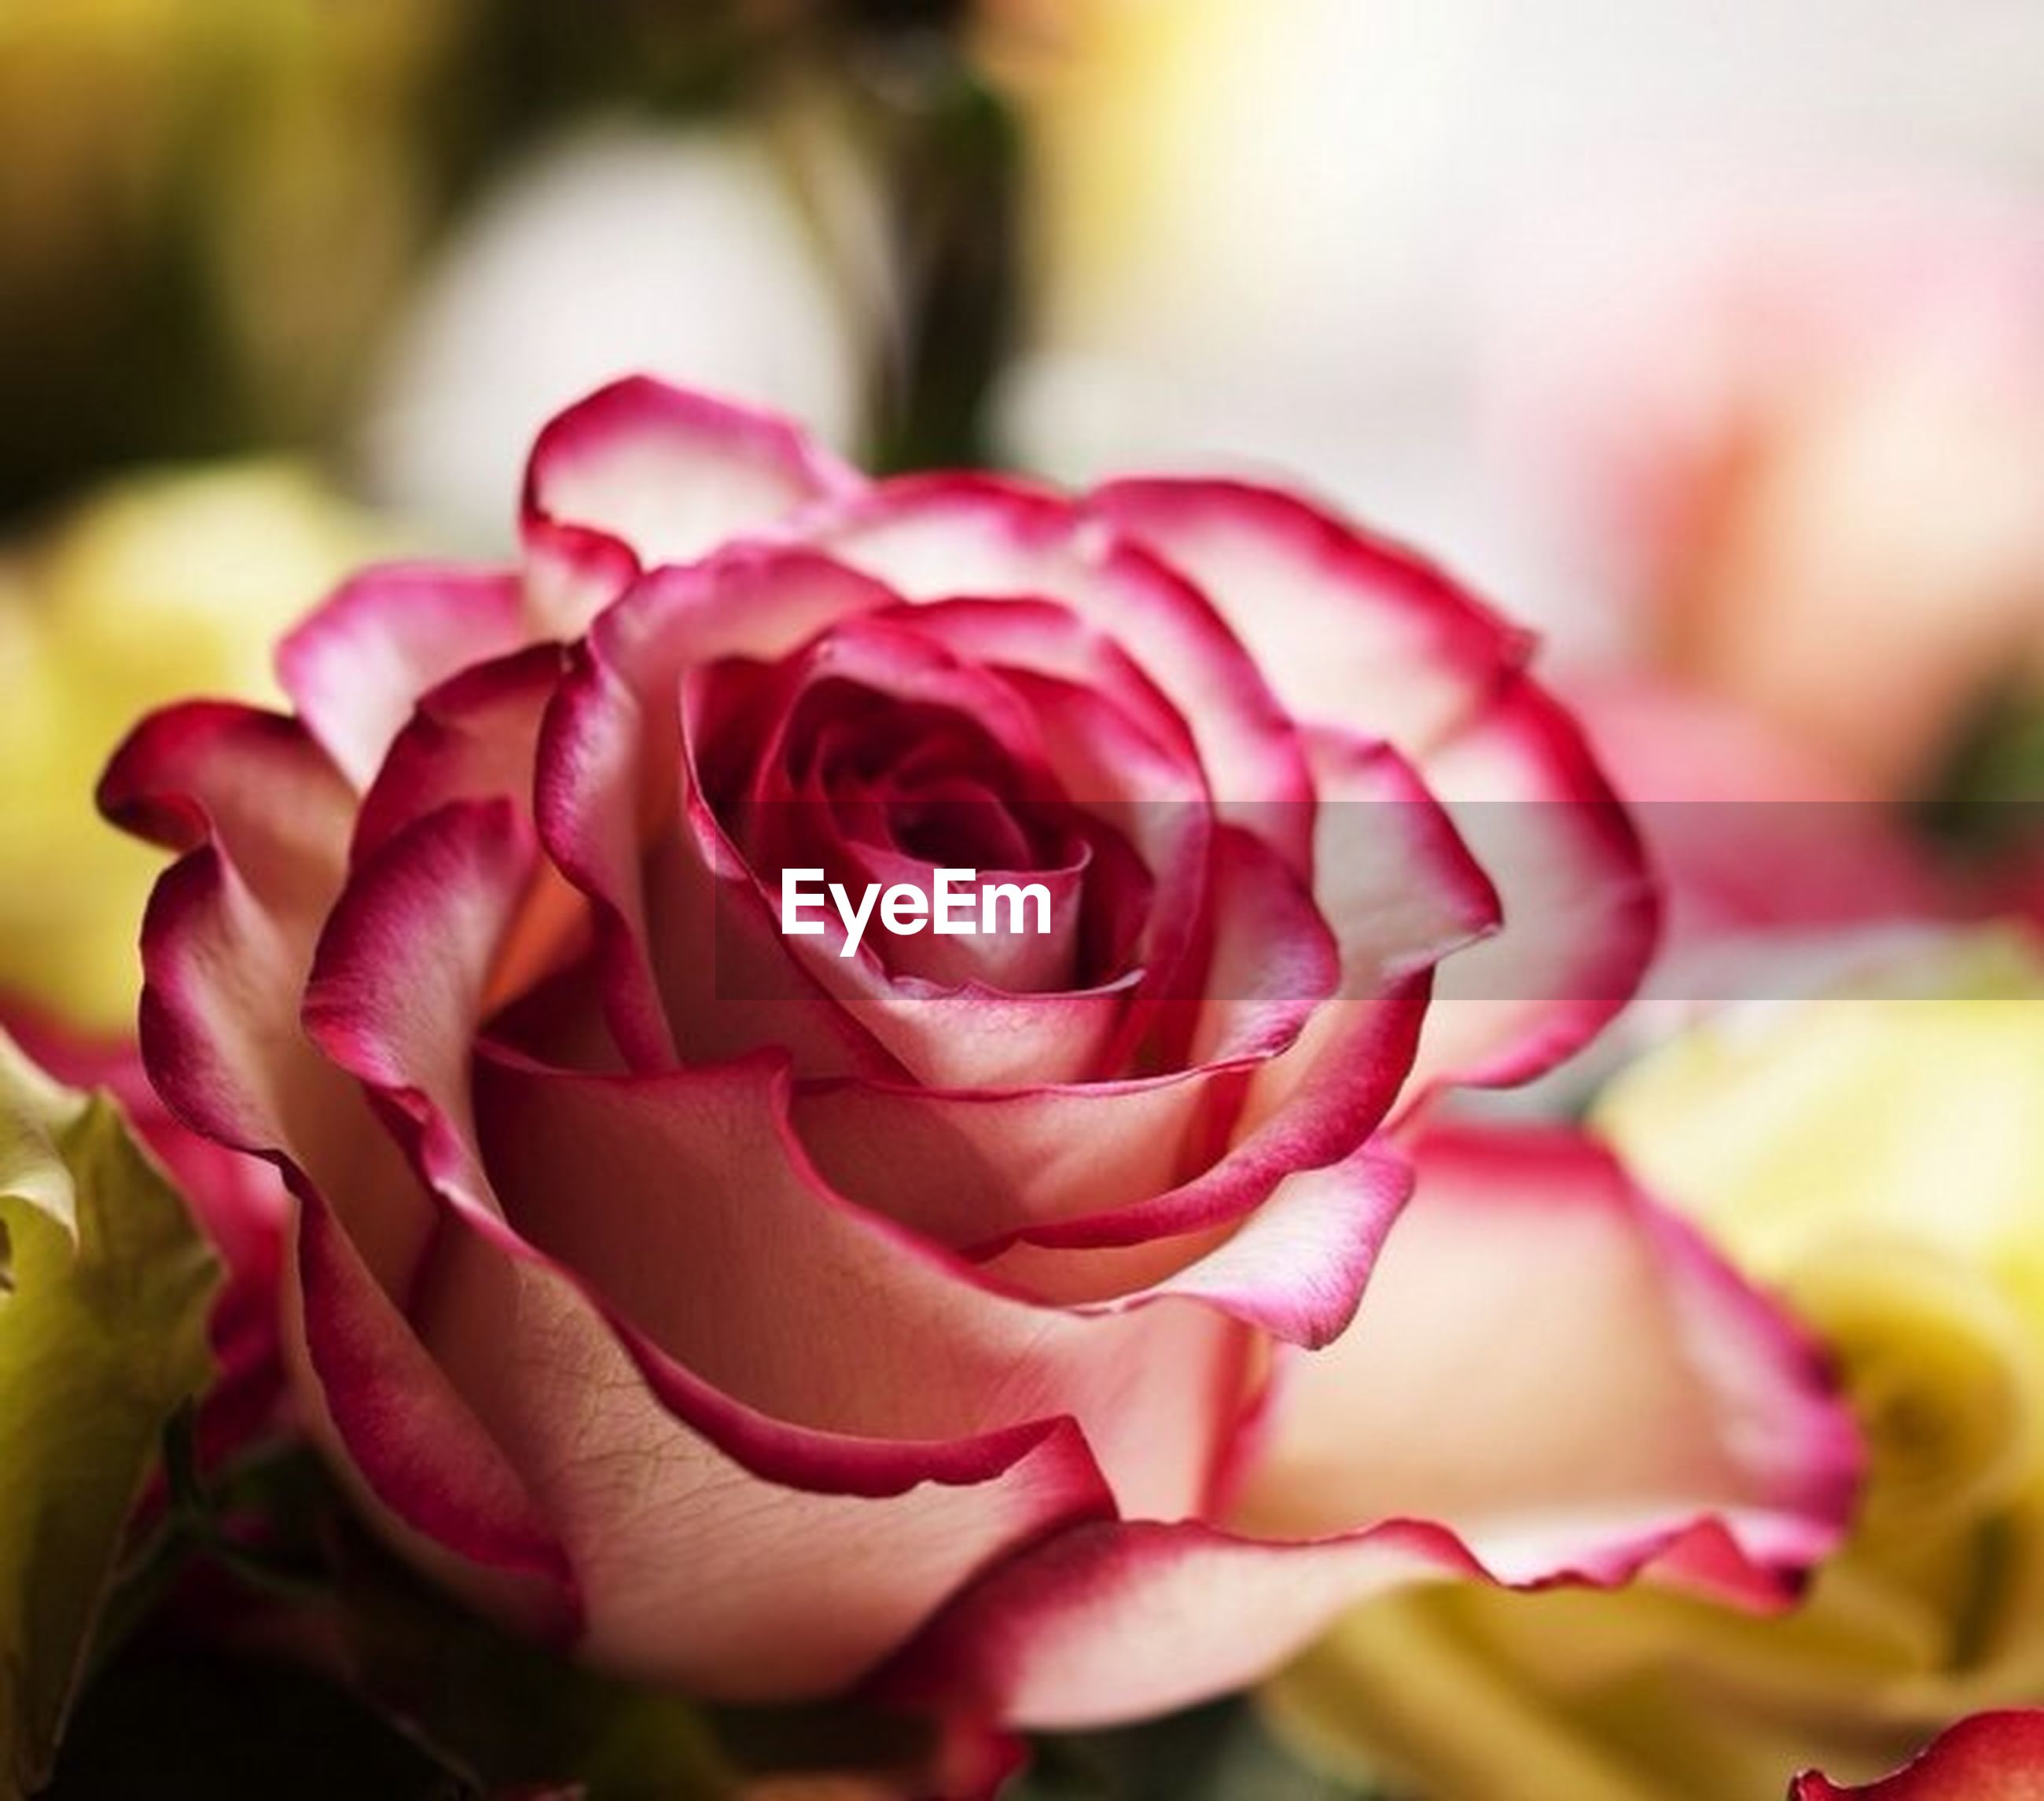 flower, petal, flower head, freshness, rose - flower, fragility, close-up, beauty in nature, pink color, growth, focus on foreground, nature, rose, single flower, blooming, selective focus, in bloom, plant, pink, blossom